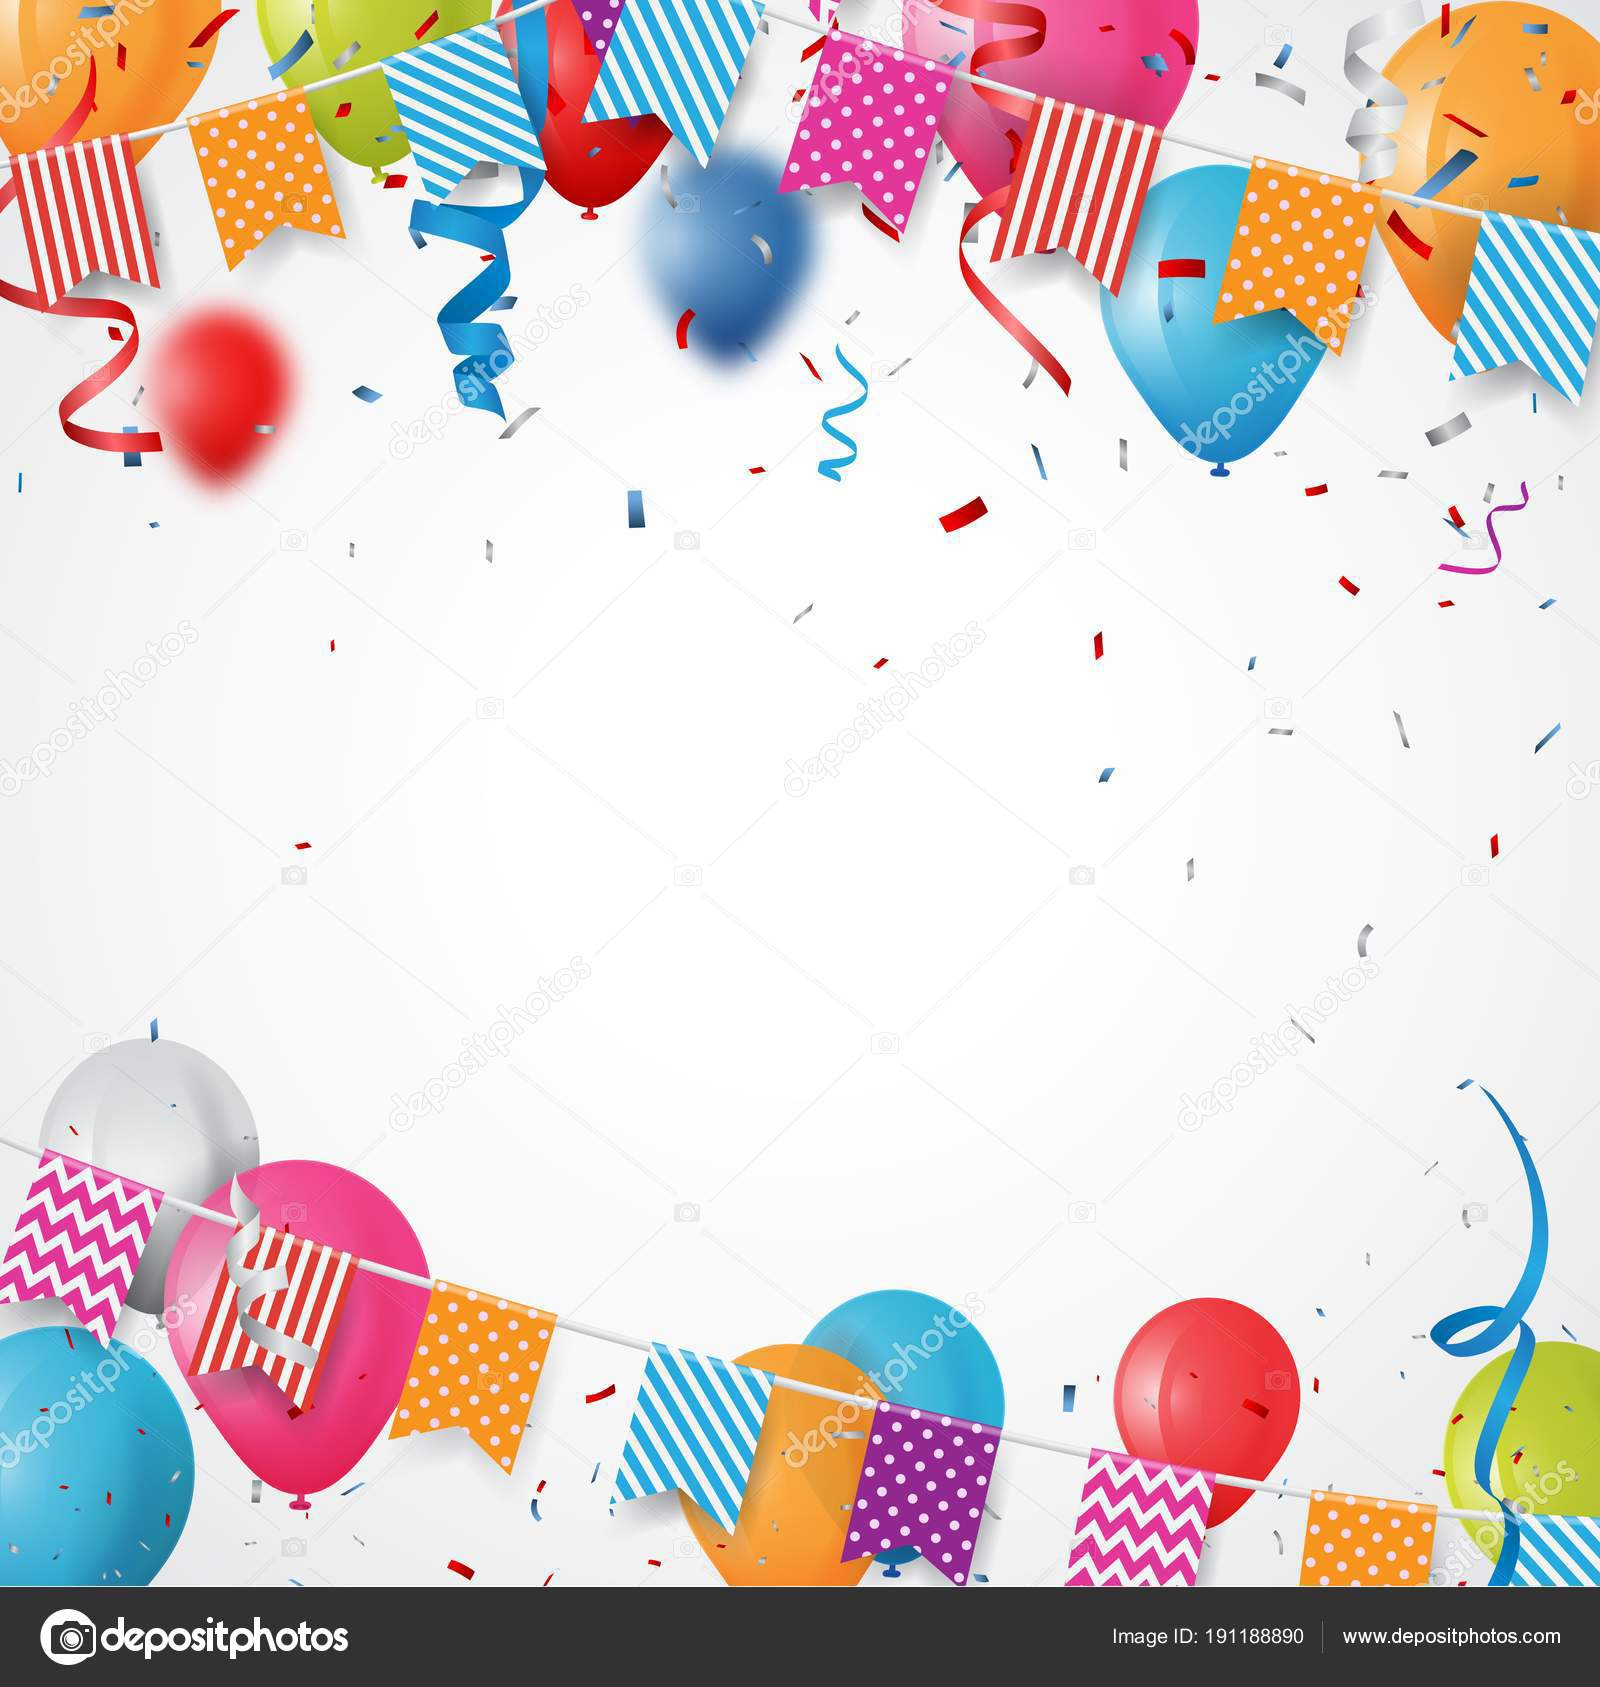 birthday card background design hd ; depositphotos_191188890-stock-illustration-colorful-vector-illustration-birthday-card